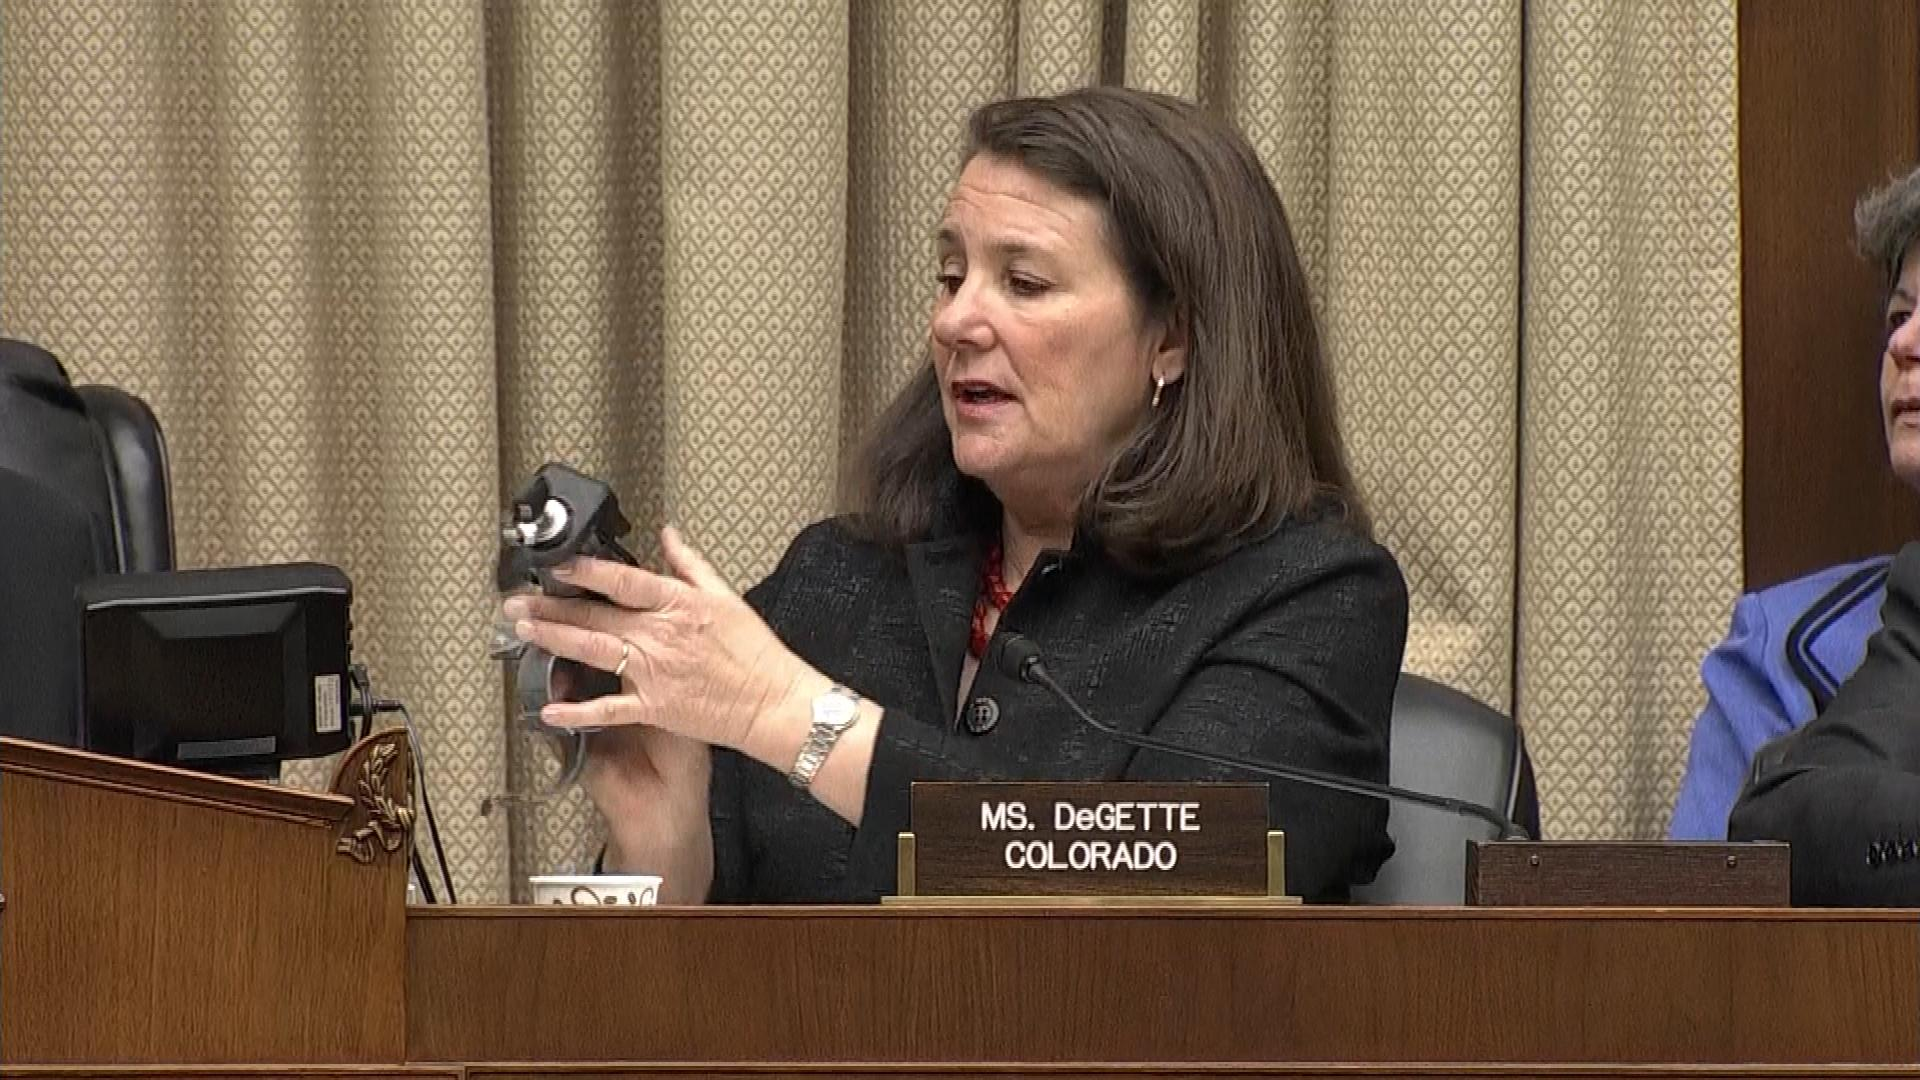 Diana DeGette, D-Colorado, holds up an ignition switch for one of the cars (credit; CBS)